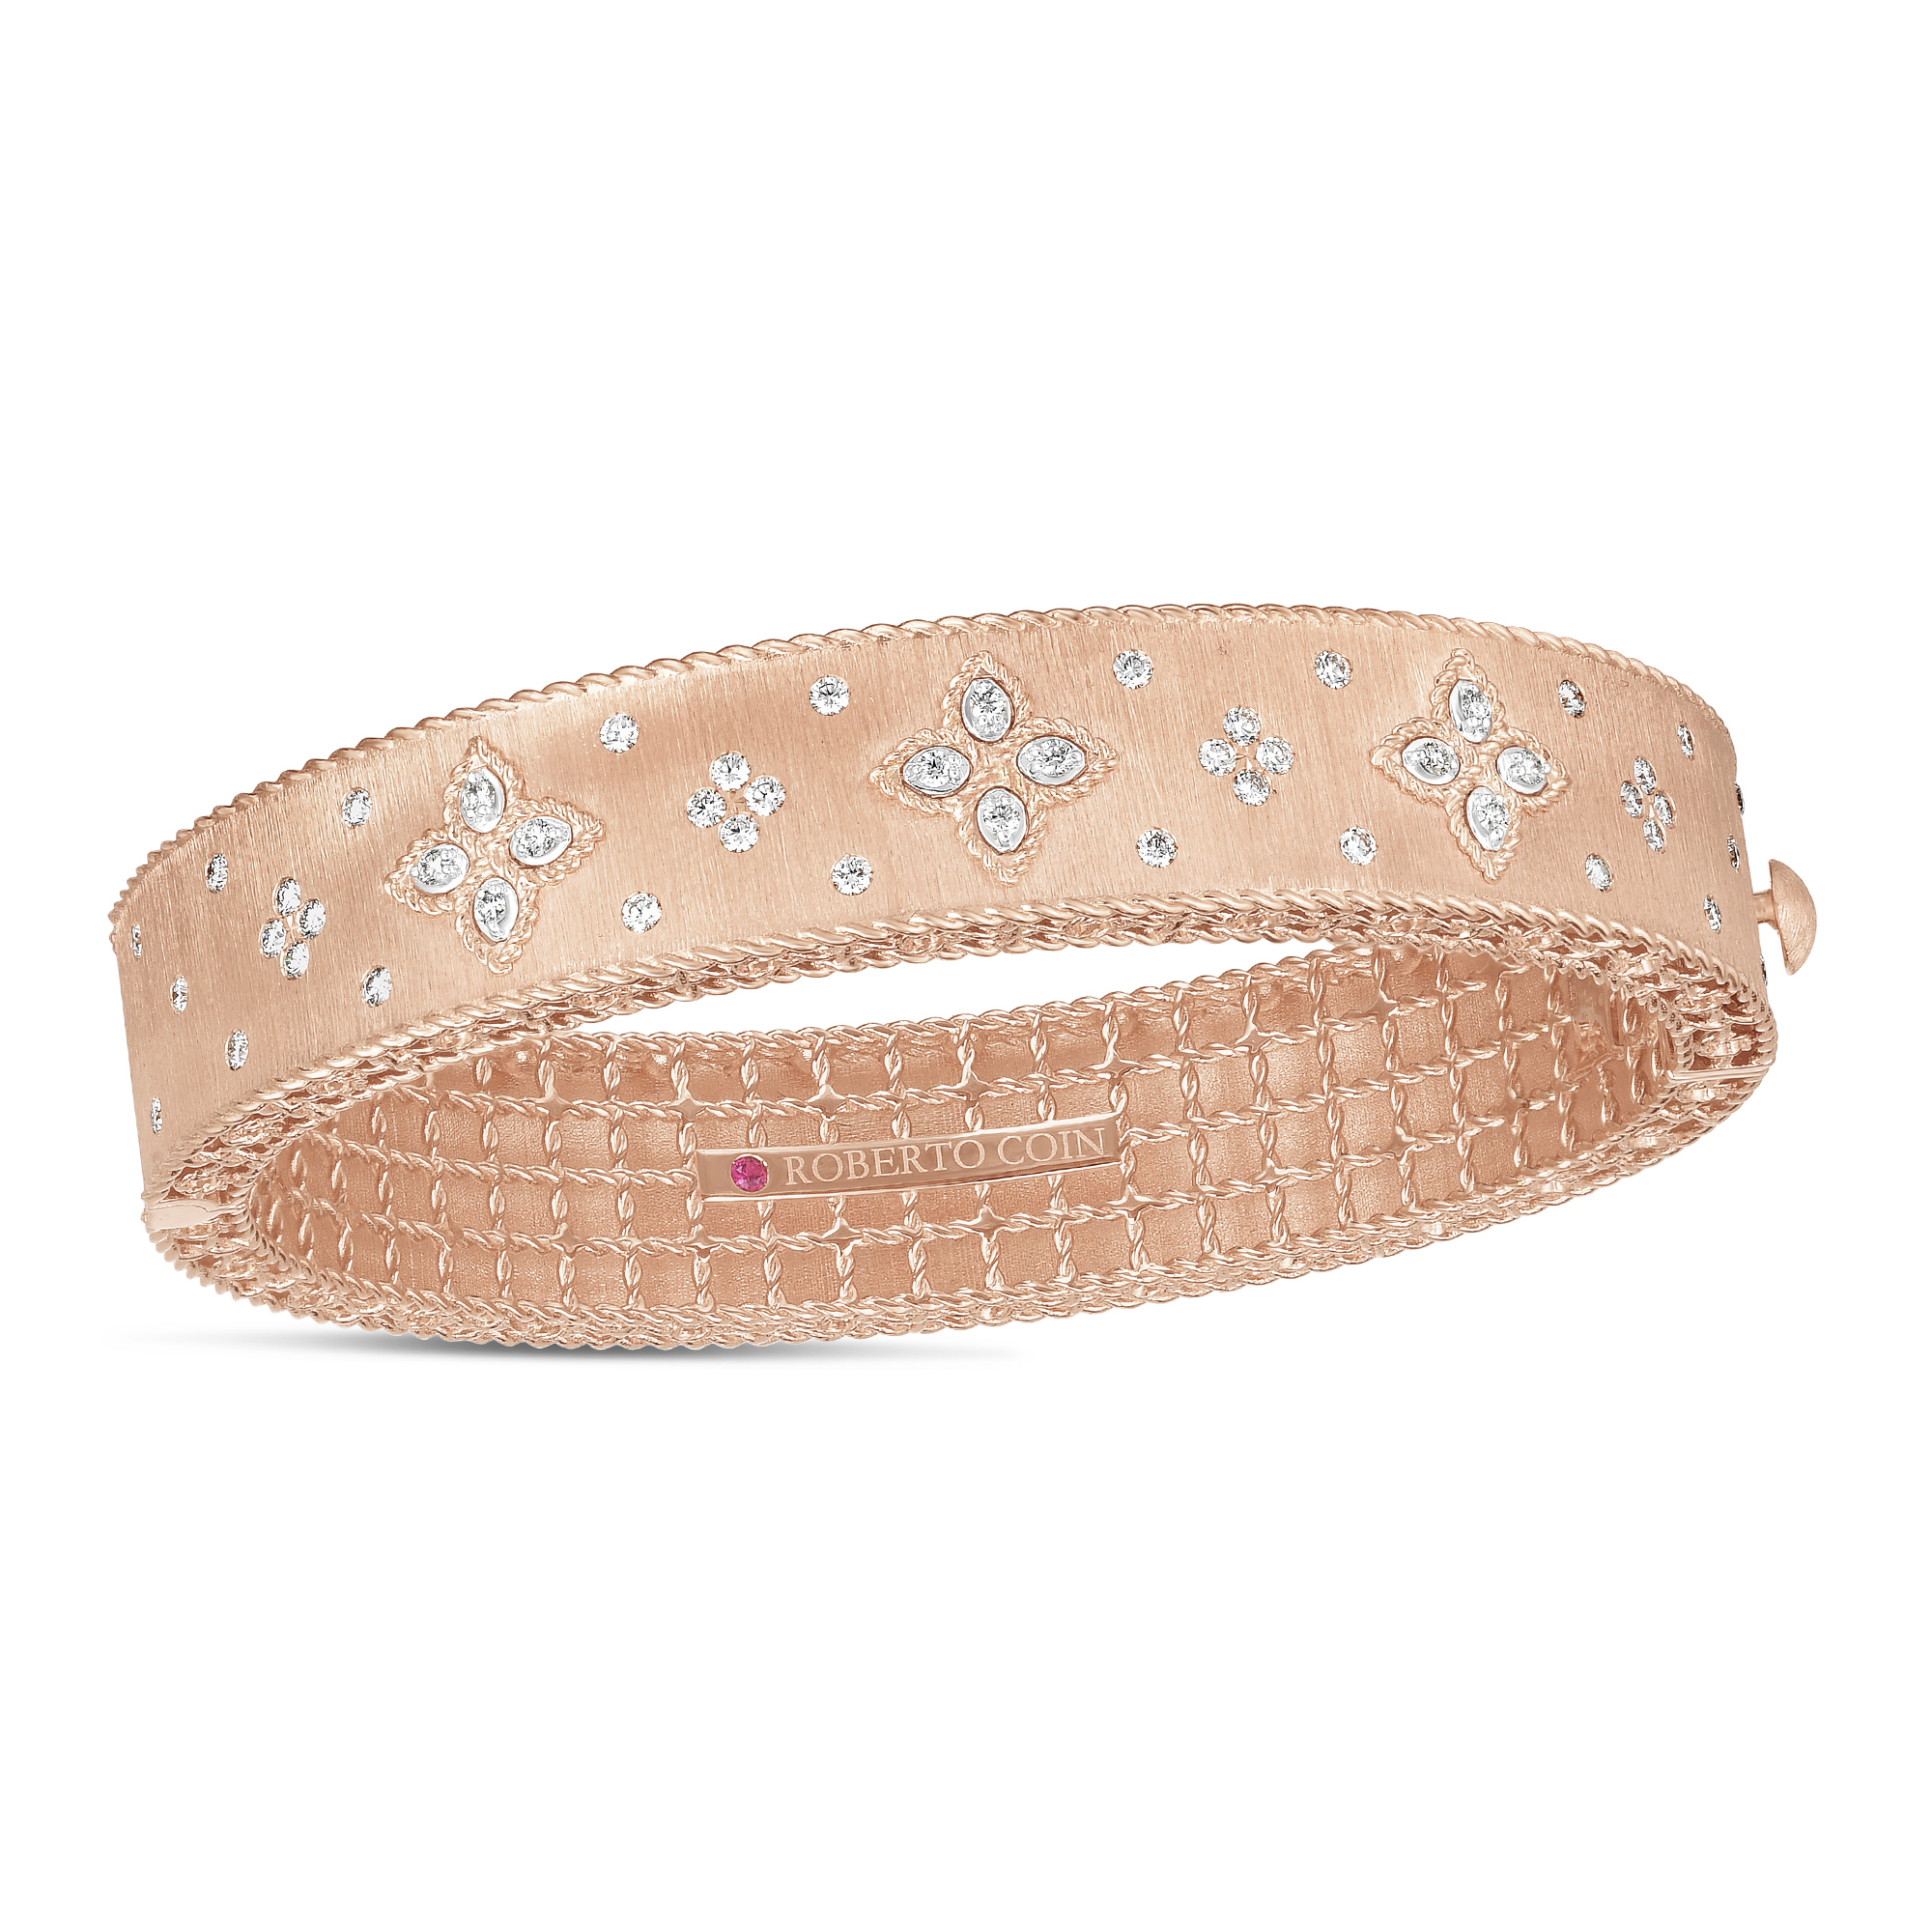 Venetian Princess Bangle